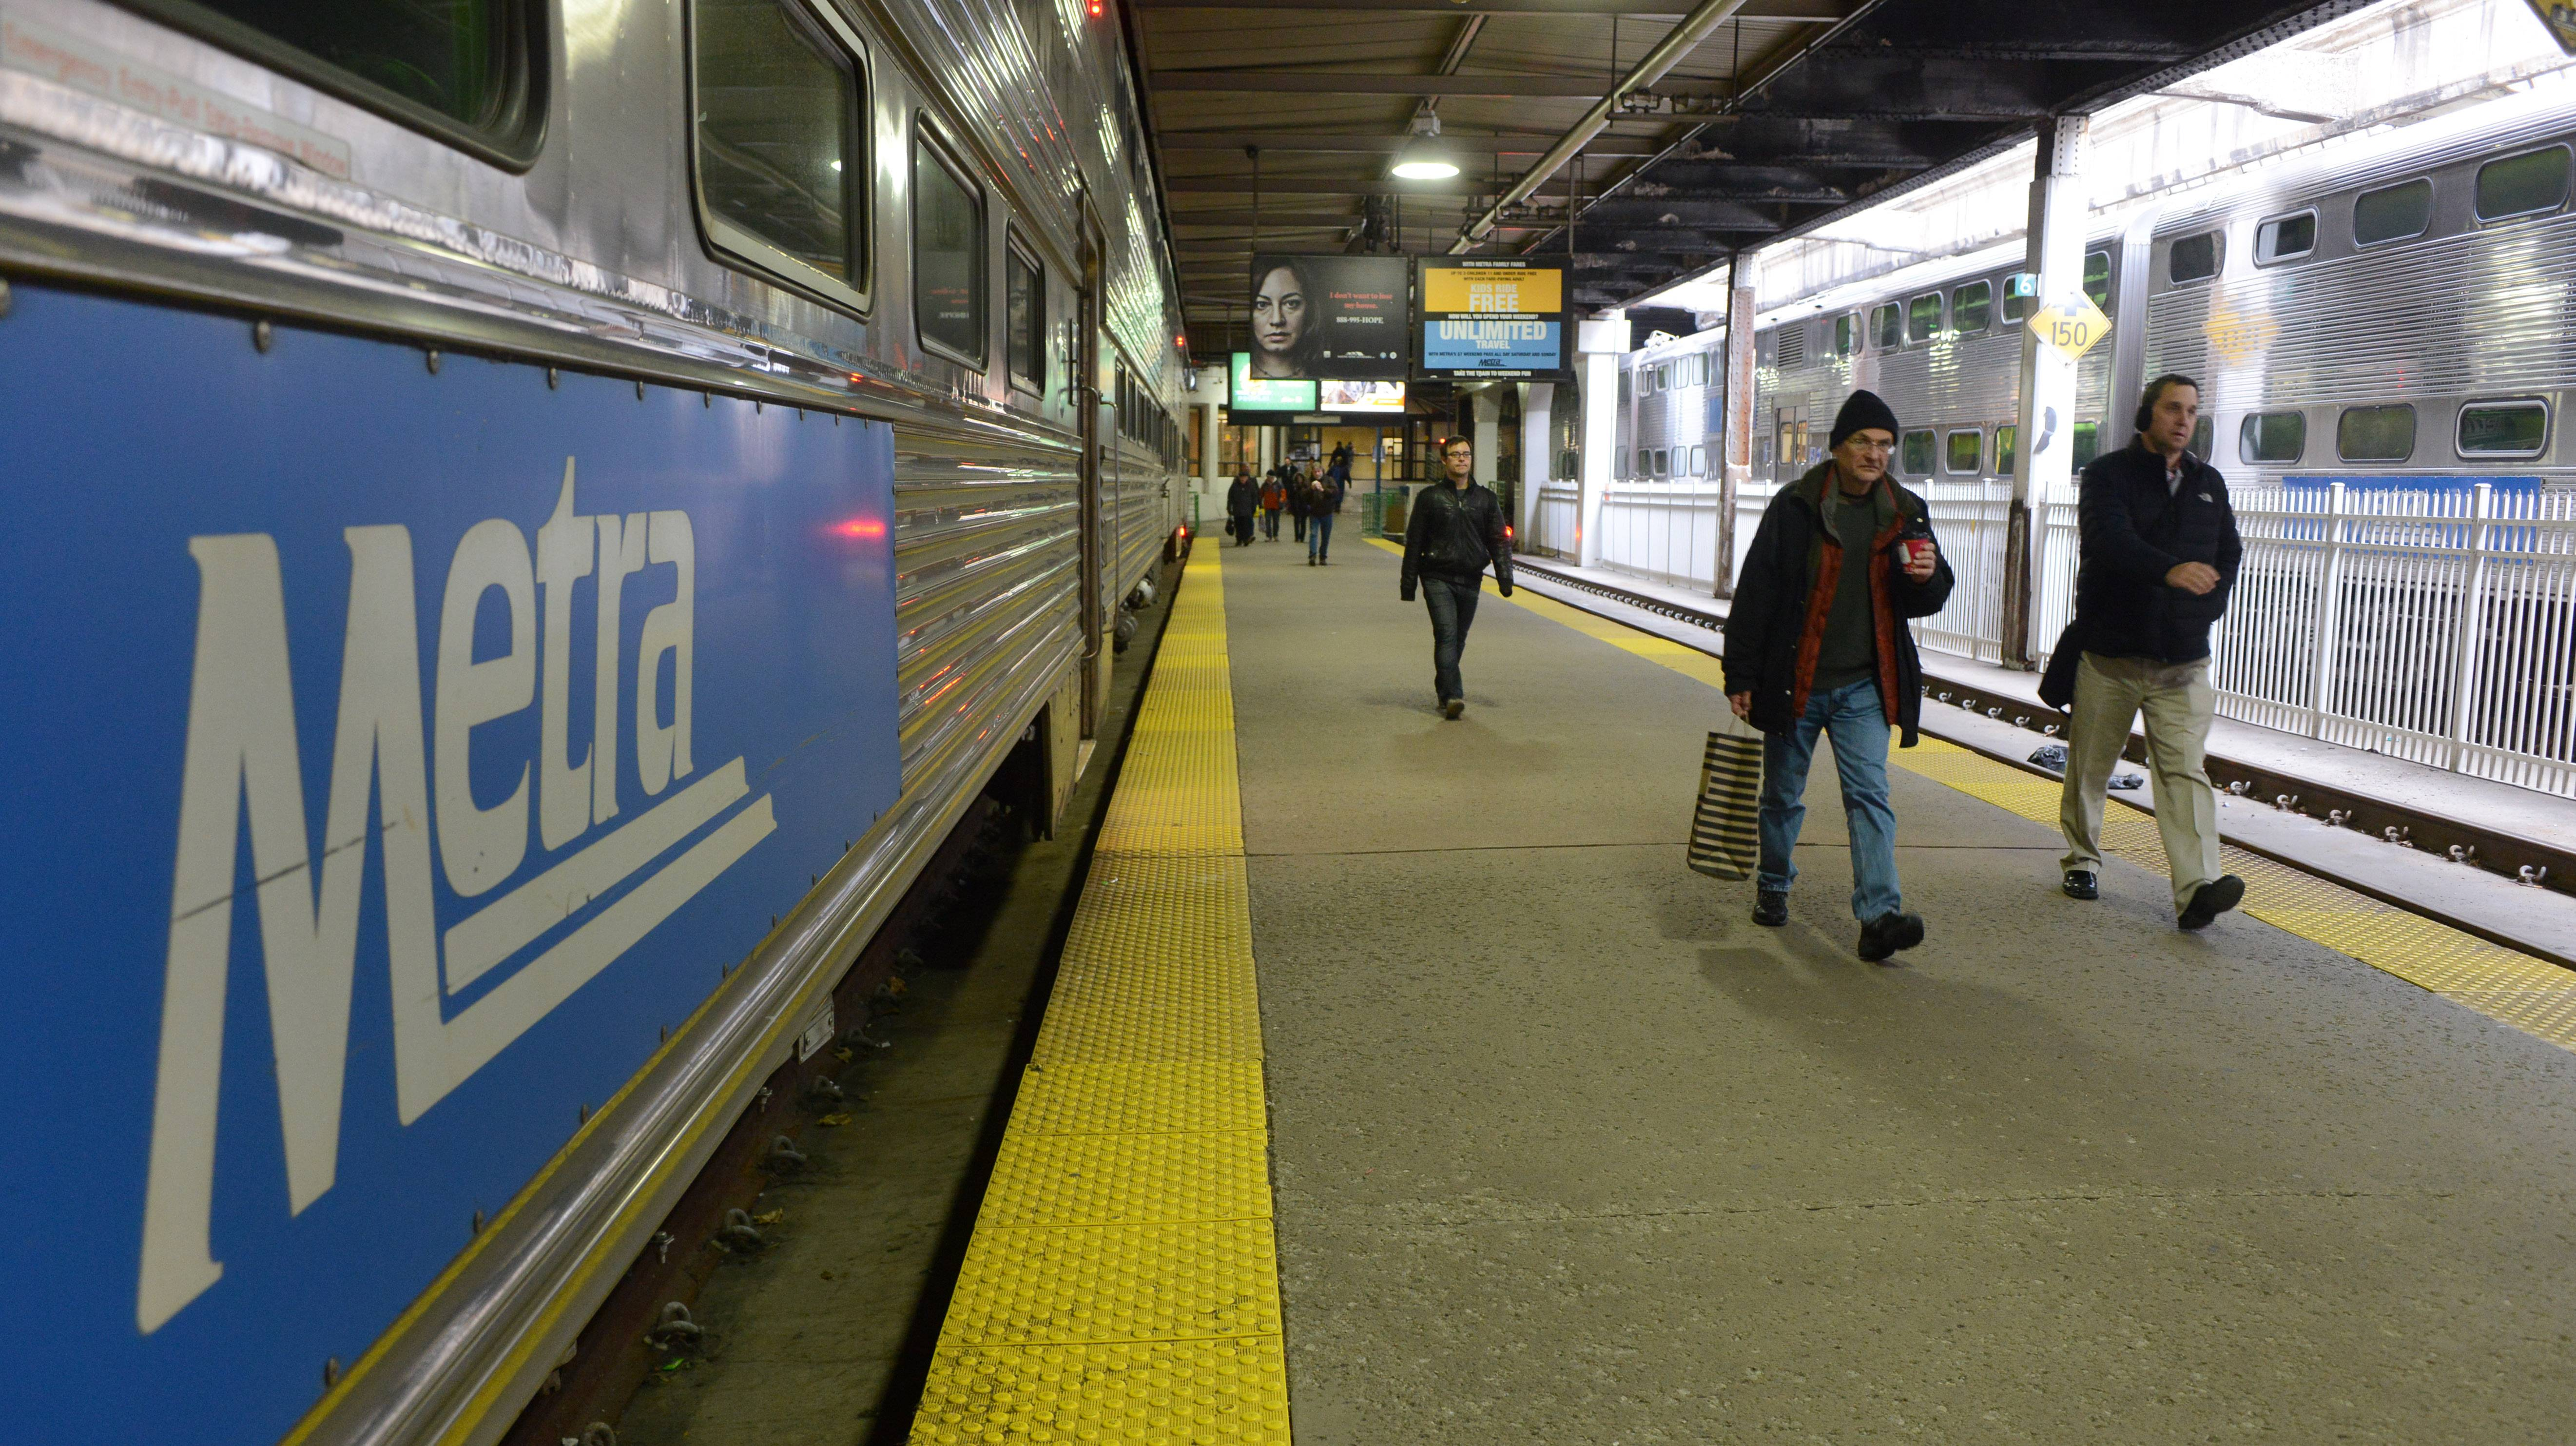 Pyke: How to make the most of suburban transit